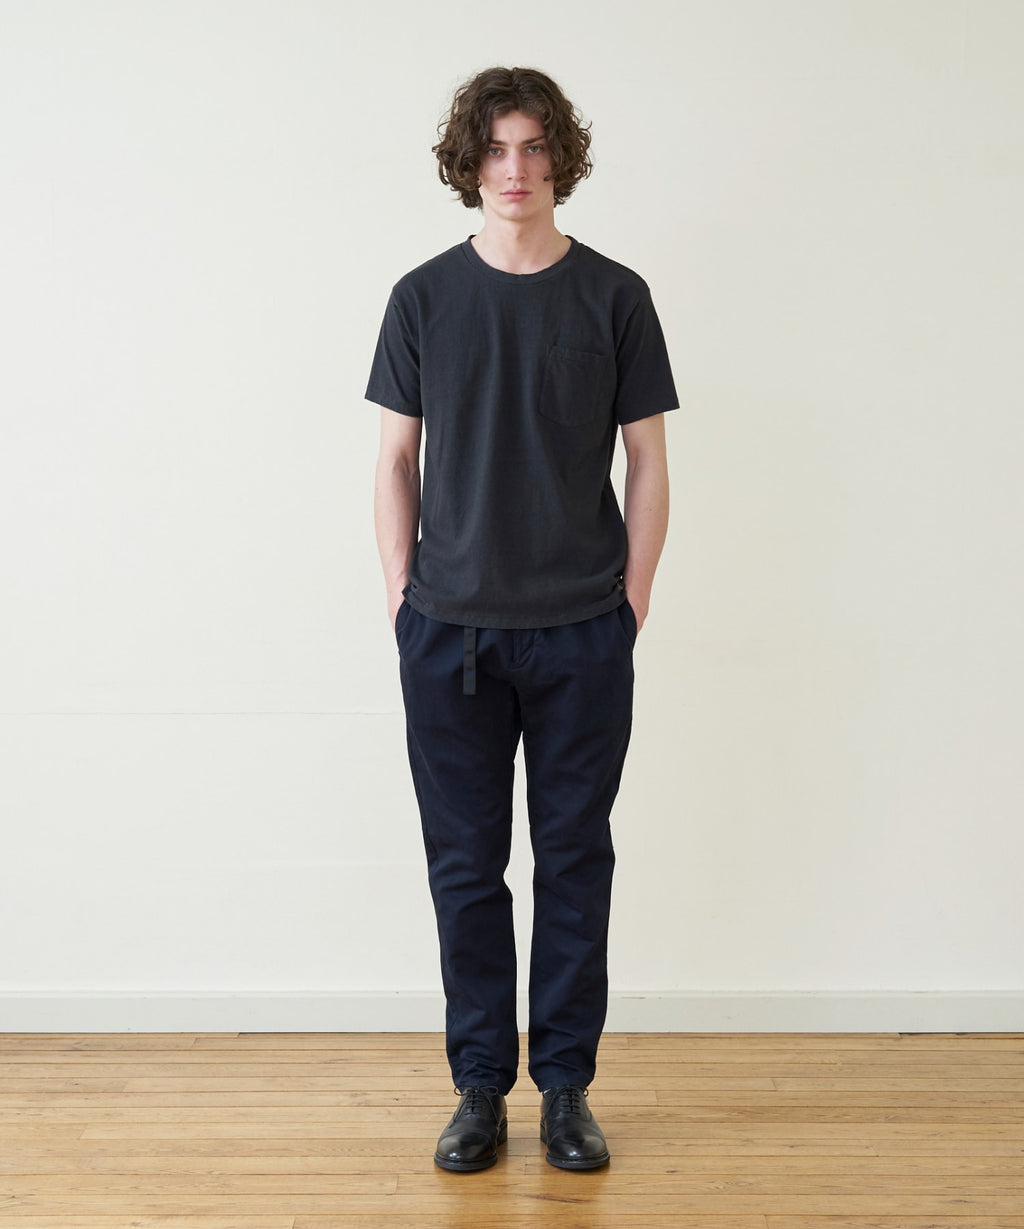 A.TAKA / EASY PANTS / NAVY